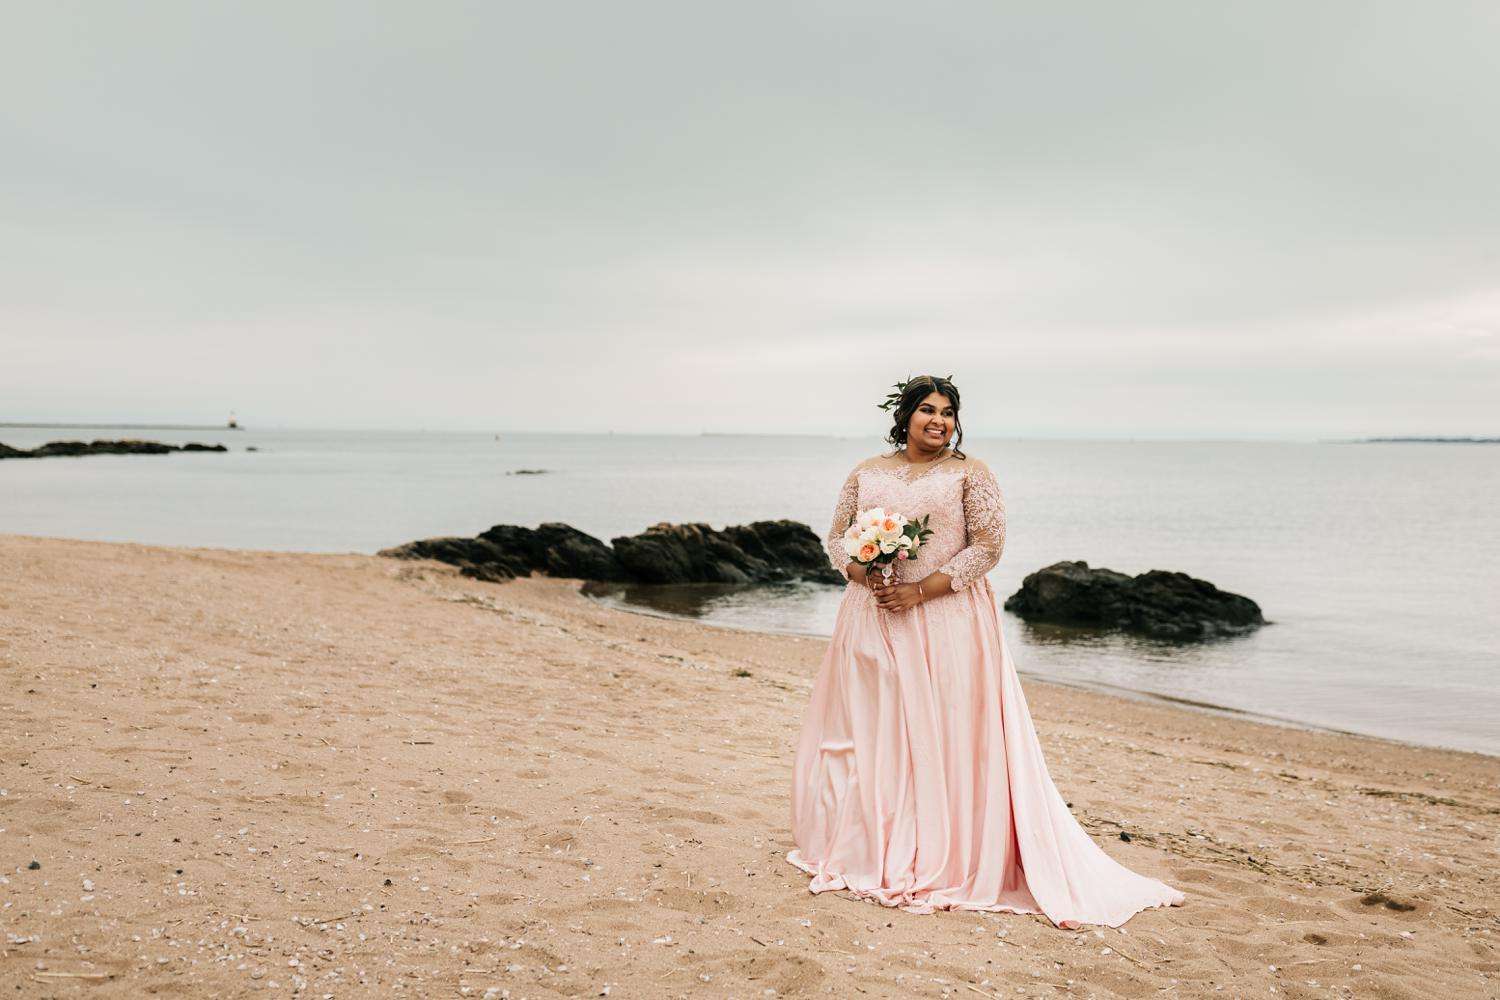 Bride in pink wedding dress on beach at sunset